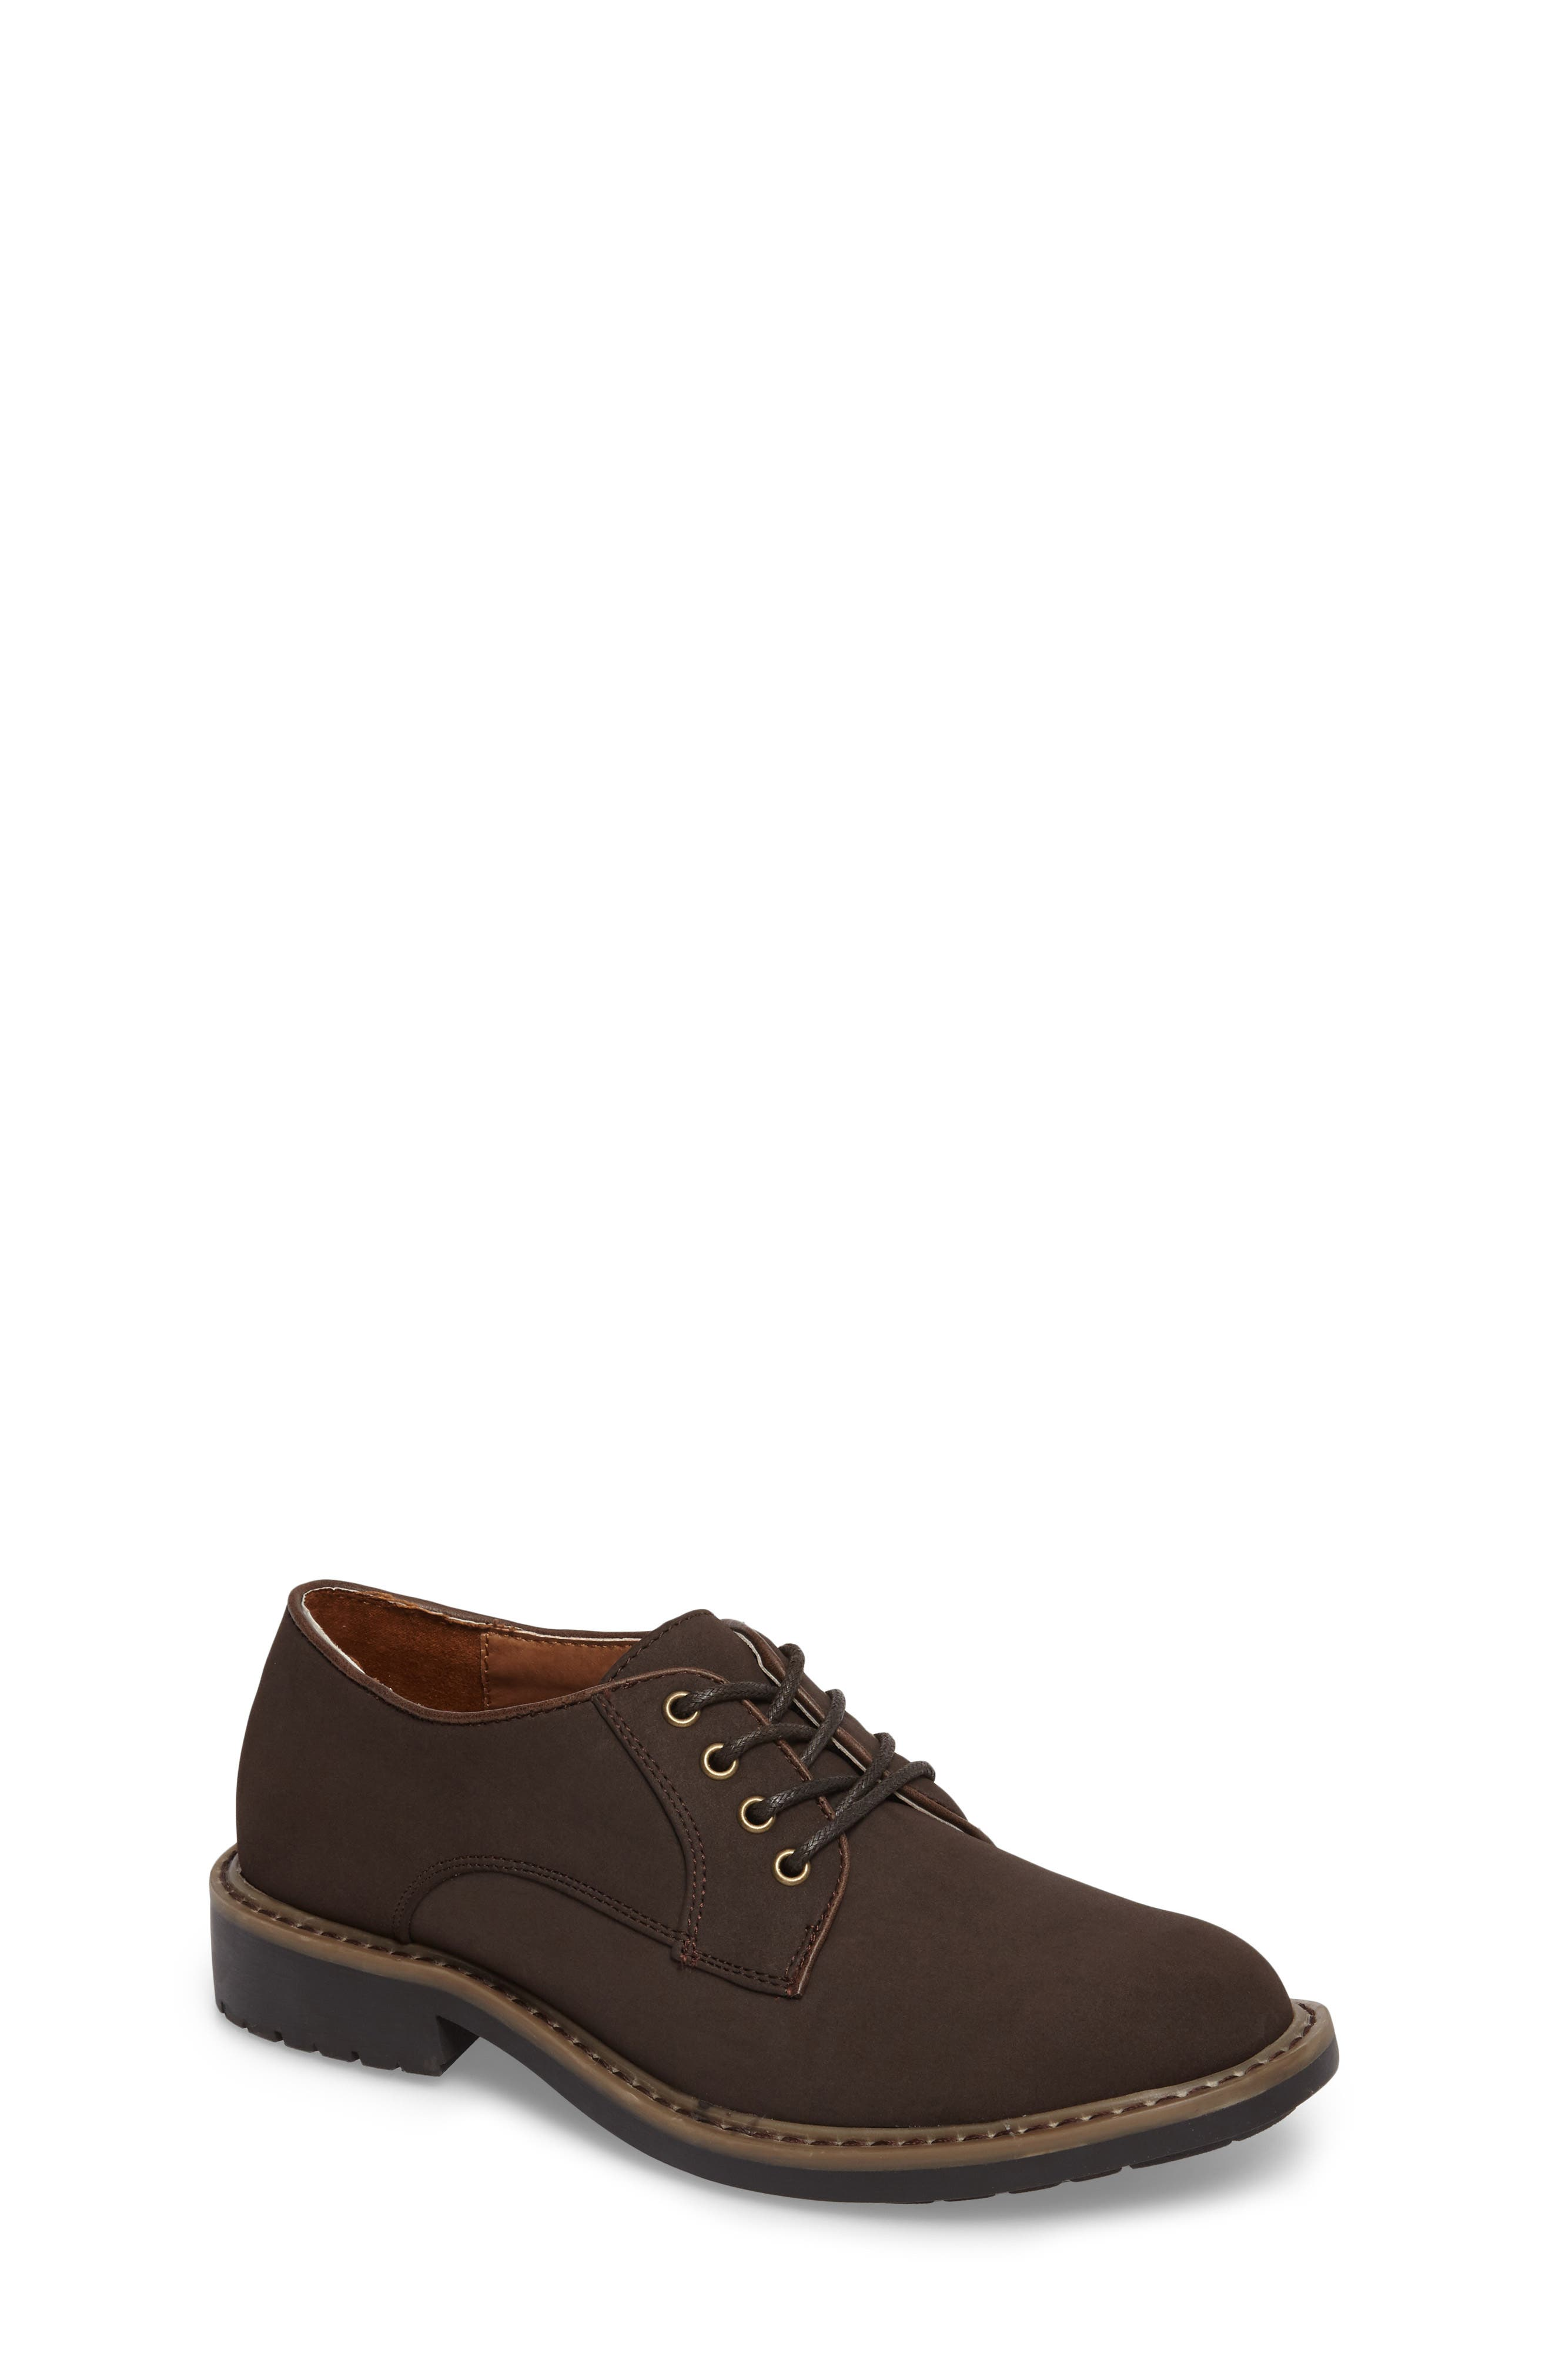 Kenneth Cole New York Take Buck Oxford,                             Main thumbnail 1, color,                             233